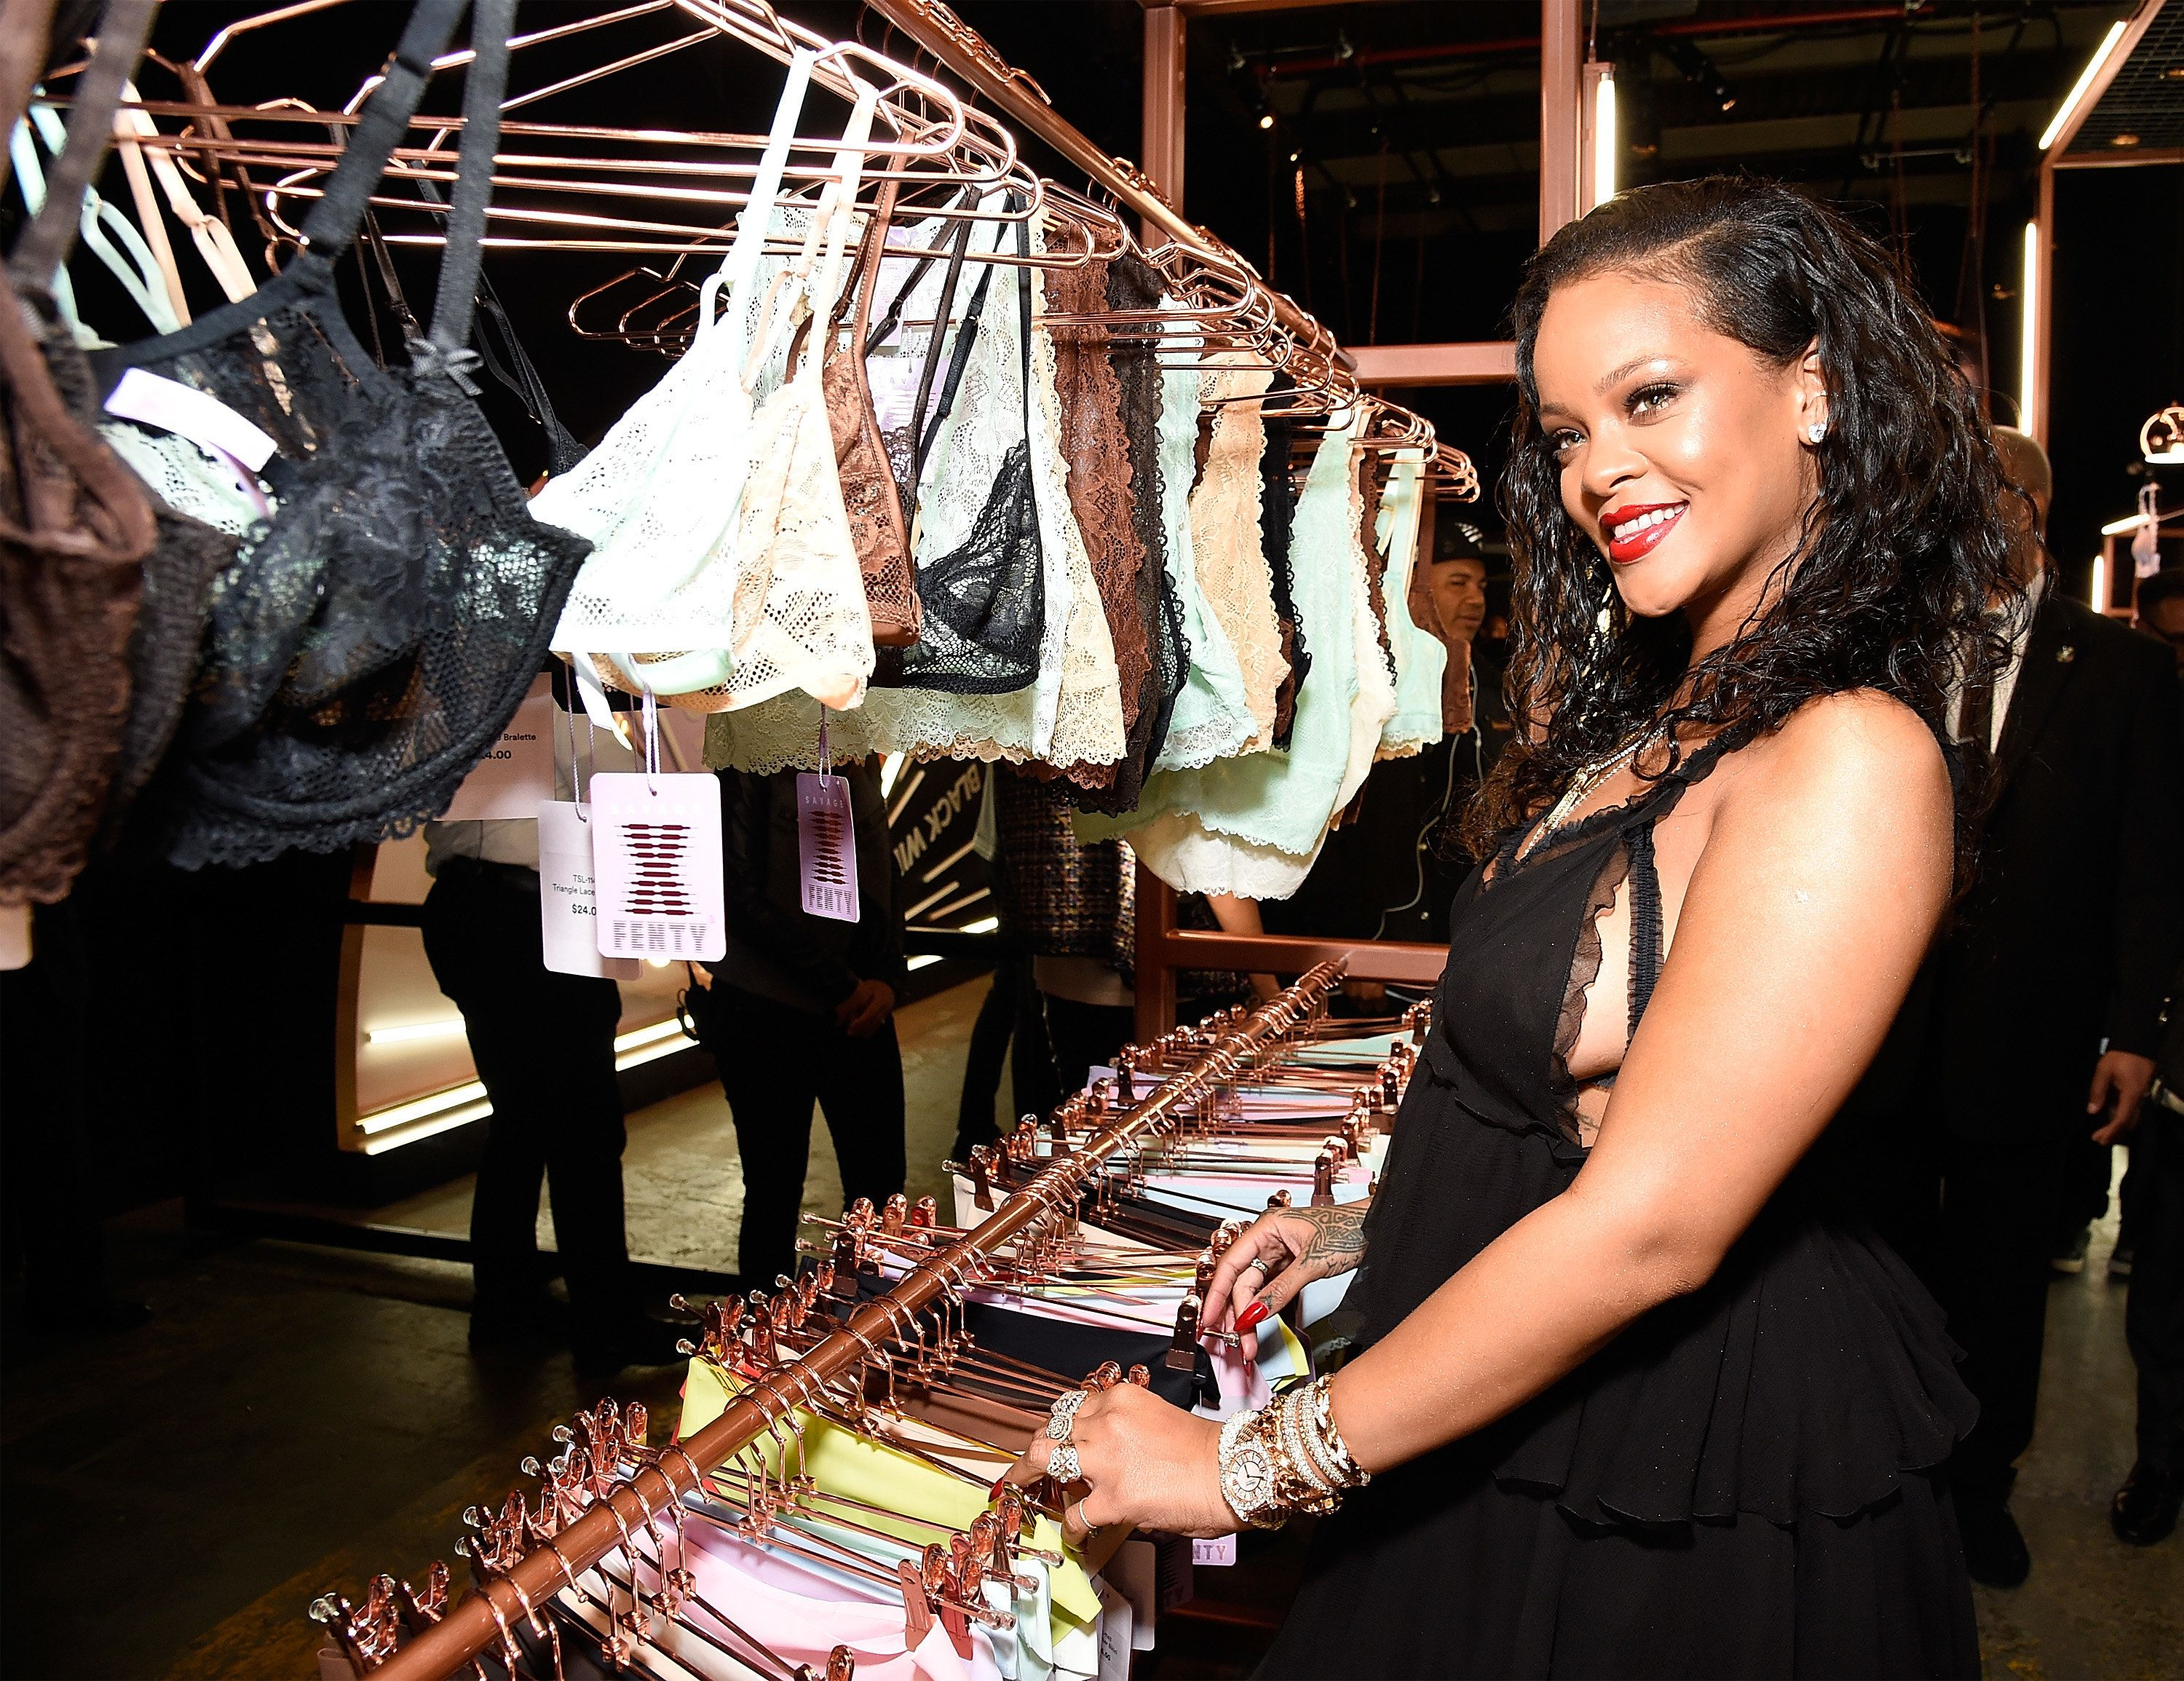 Rihanna at the launch of her new lingerie brand, Savage X Fenty, on May 10 in New York City.